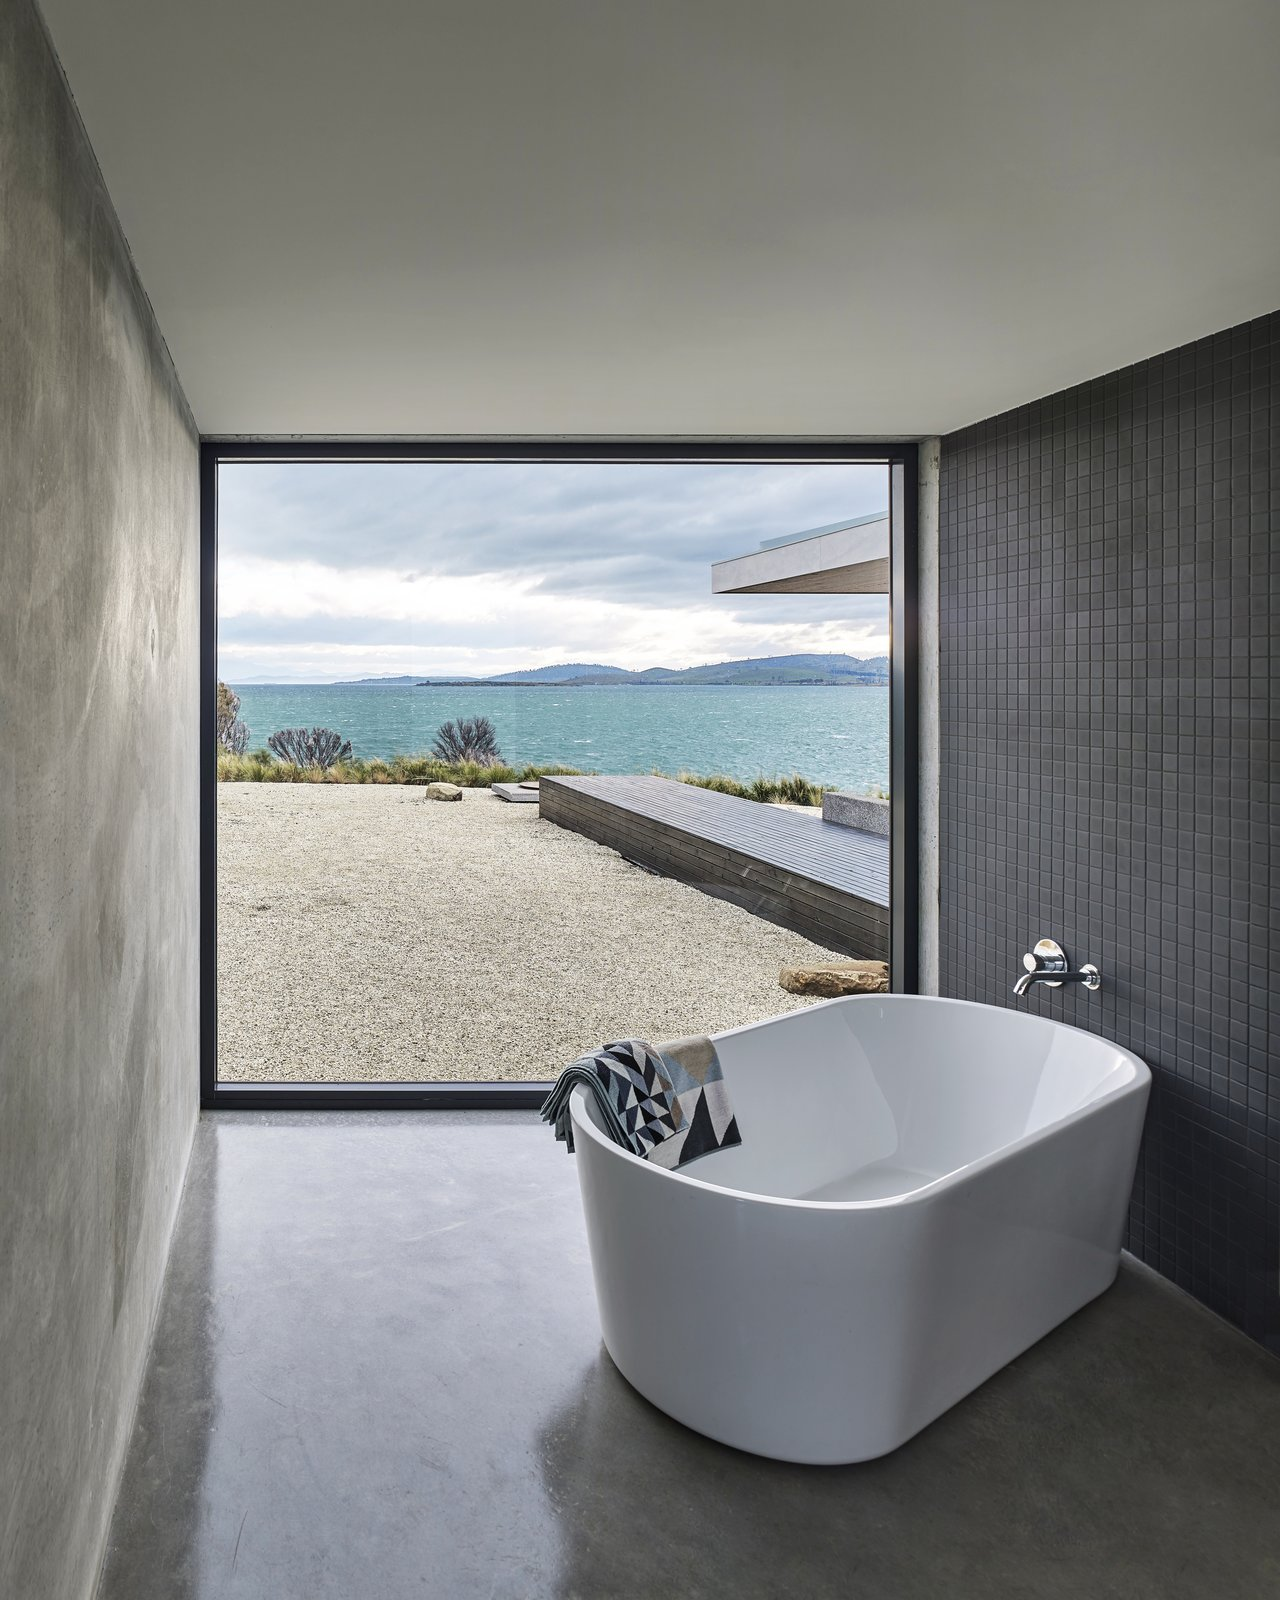 10 Modern Bathtubs That Soak In the View